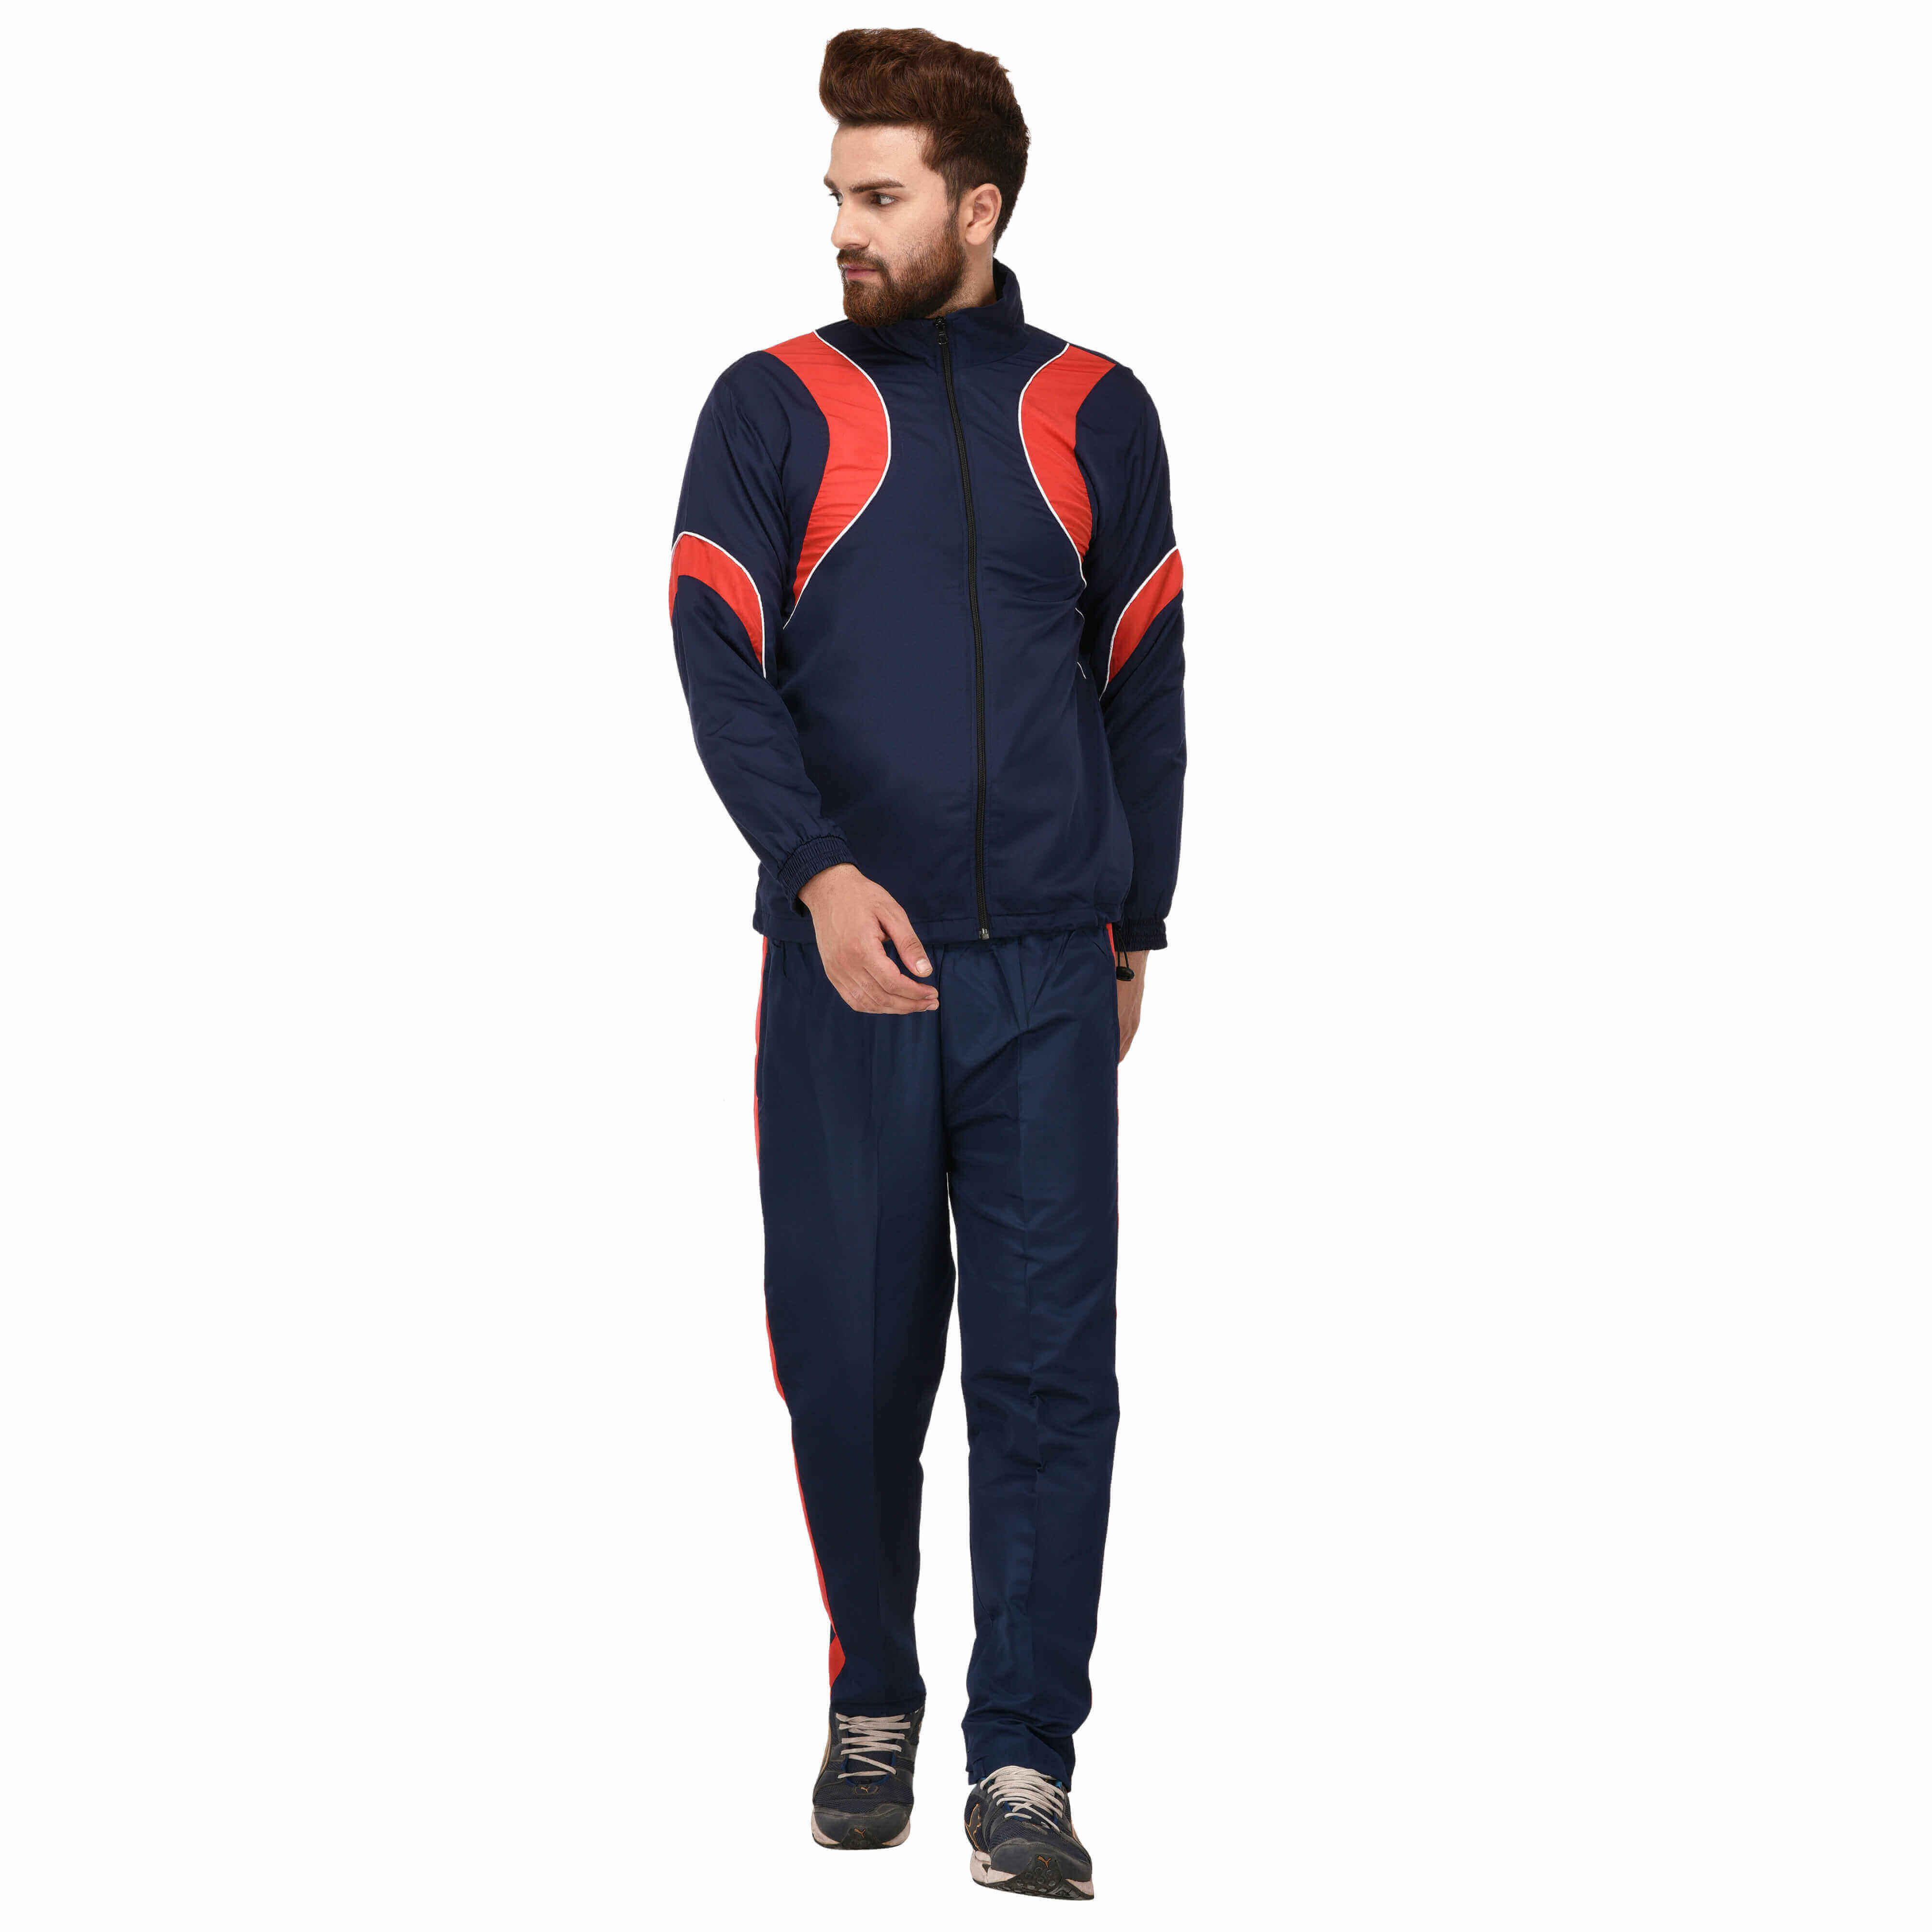 Red Tracksuit Manufacturers in United-states-of-america